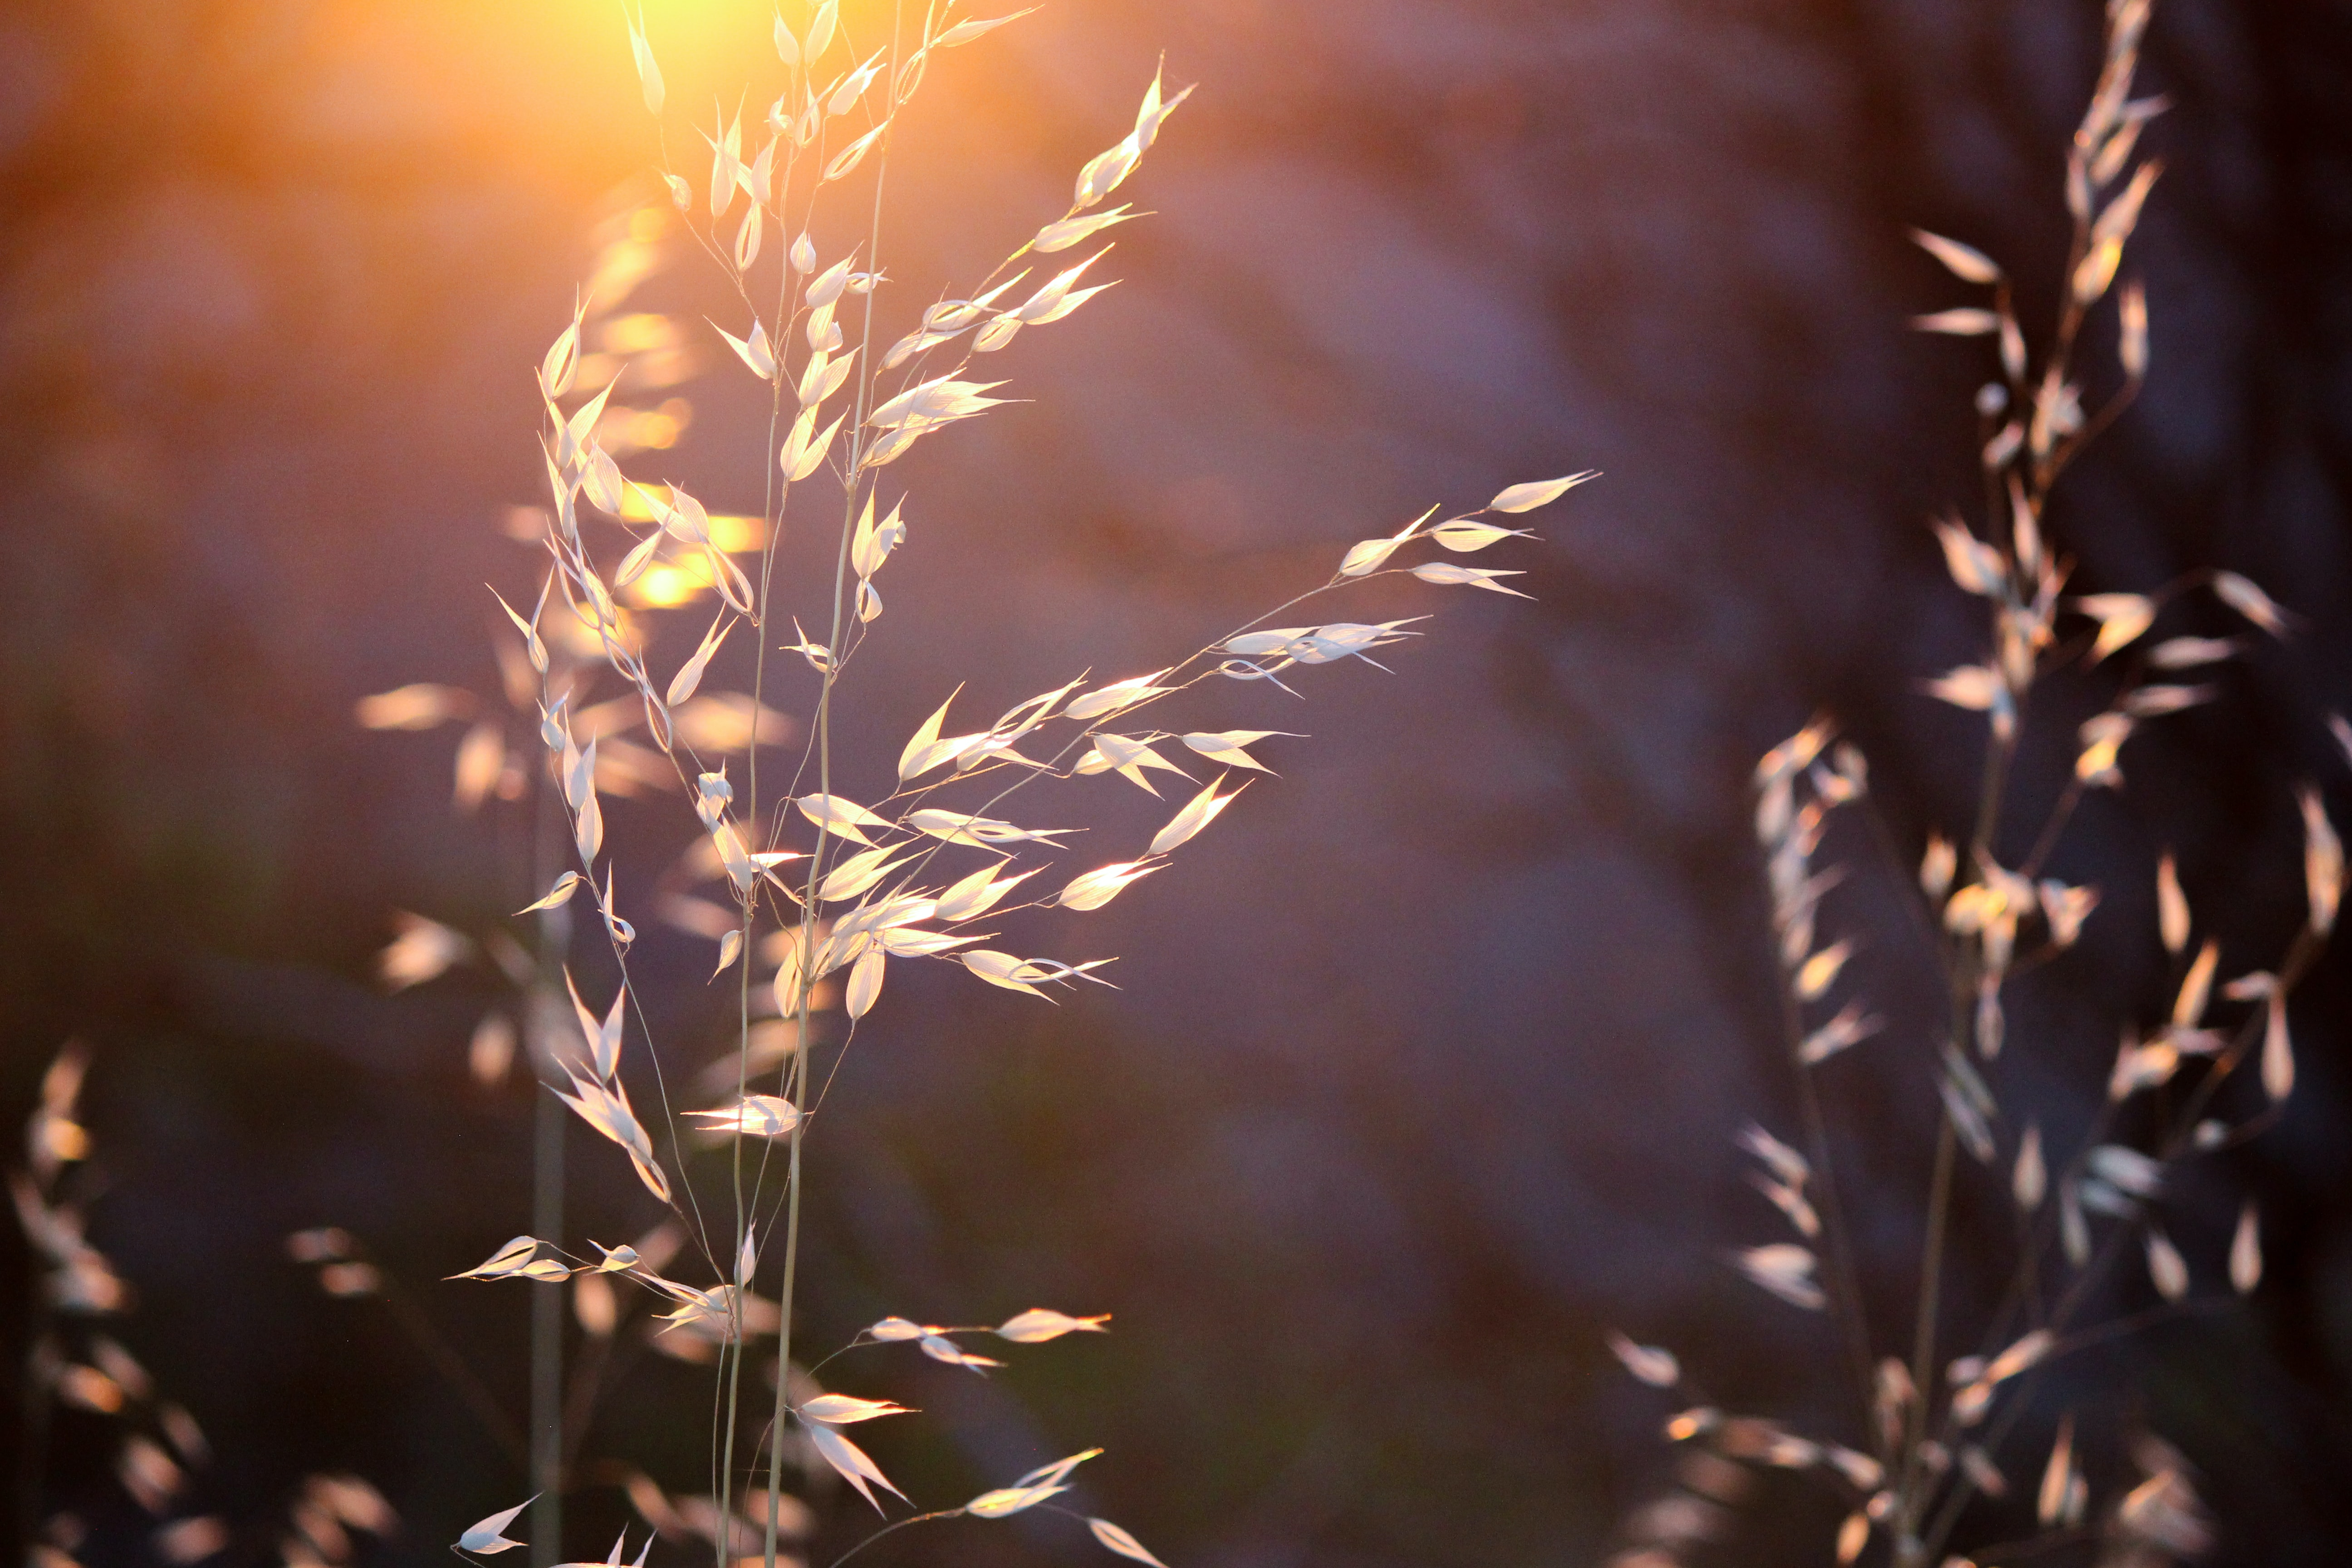 shallow focus photography of wheat plants